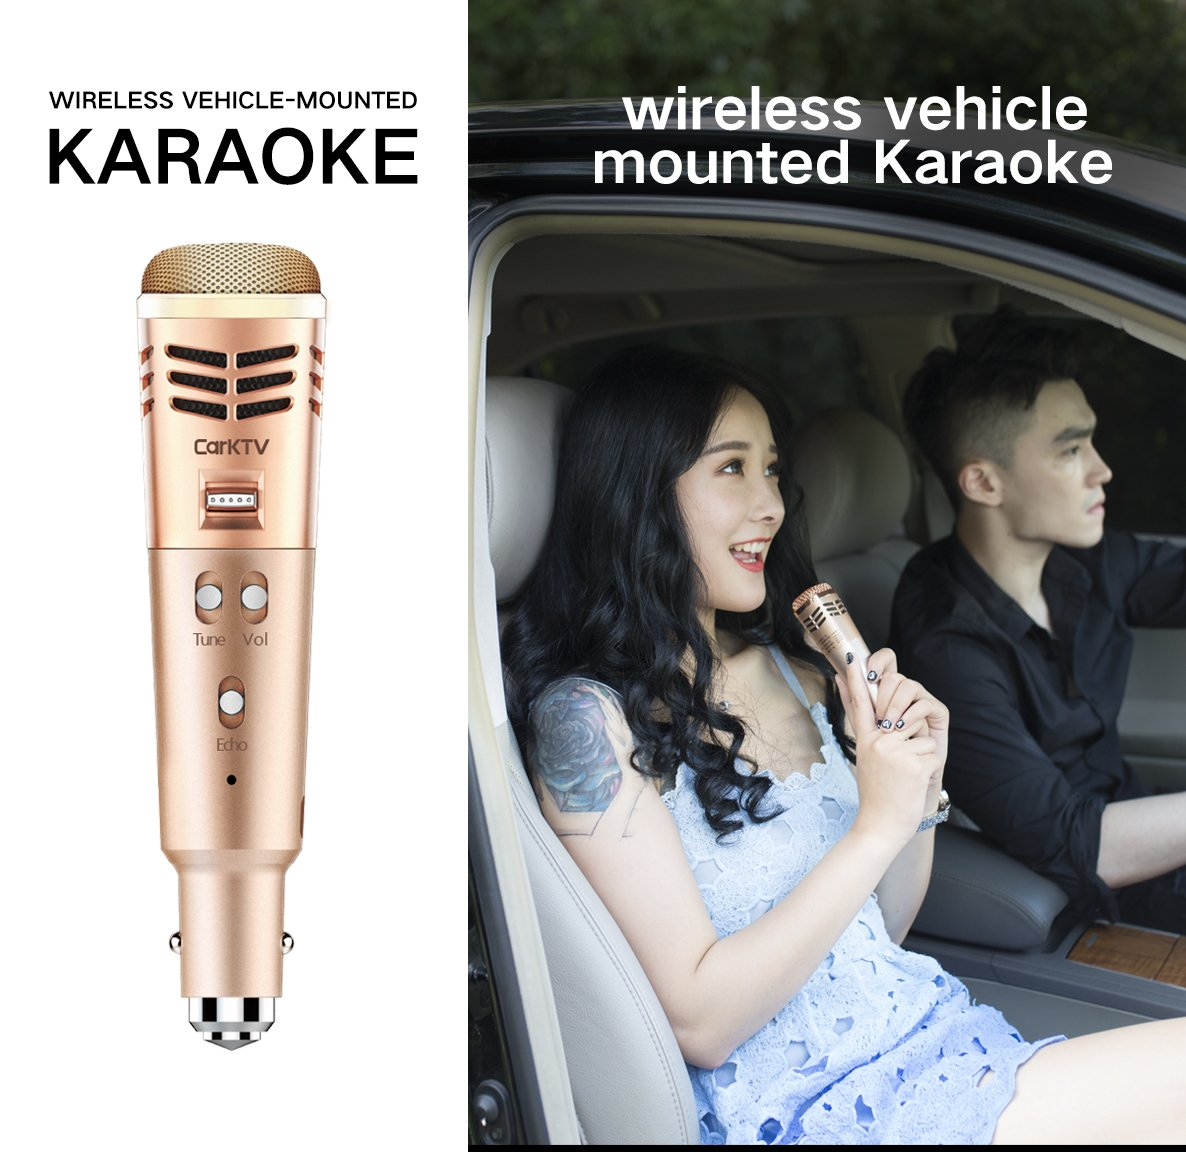 Wireless FM Bluetooth Karaoke Microphone,3-in-1 Portable Handheld karaoke Mic Home Party birthday Machine for iPhone/Android/iPad/Sony,and All Smartphone connect with cars